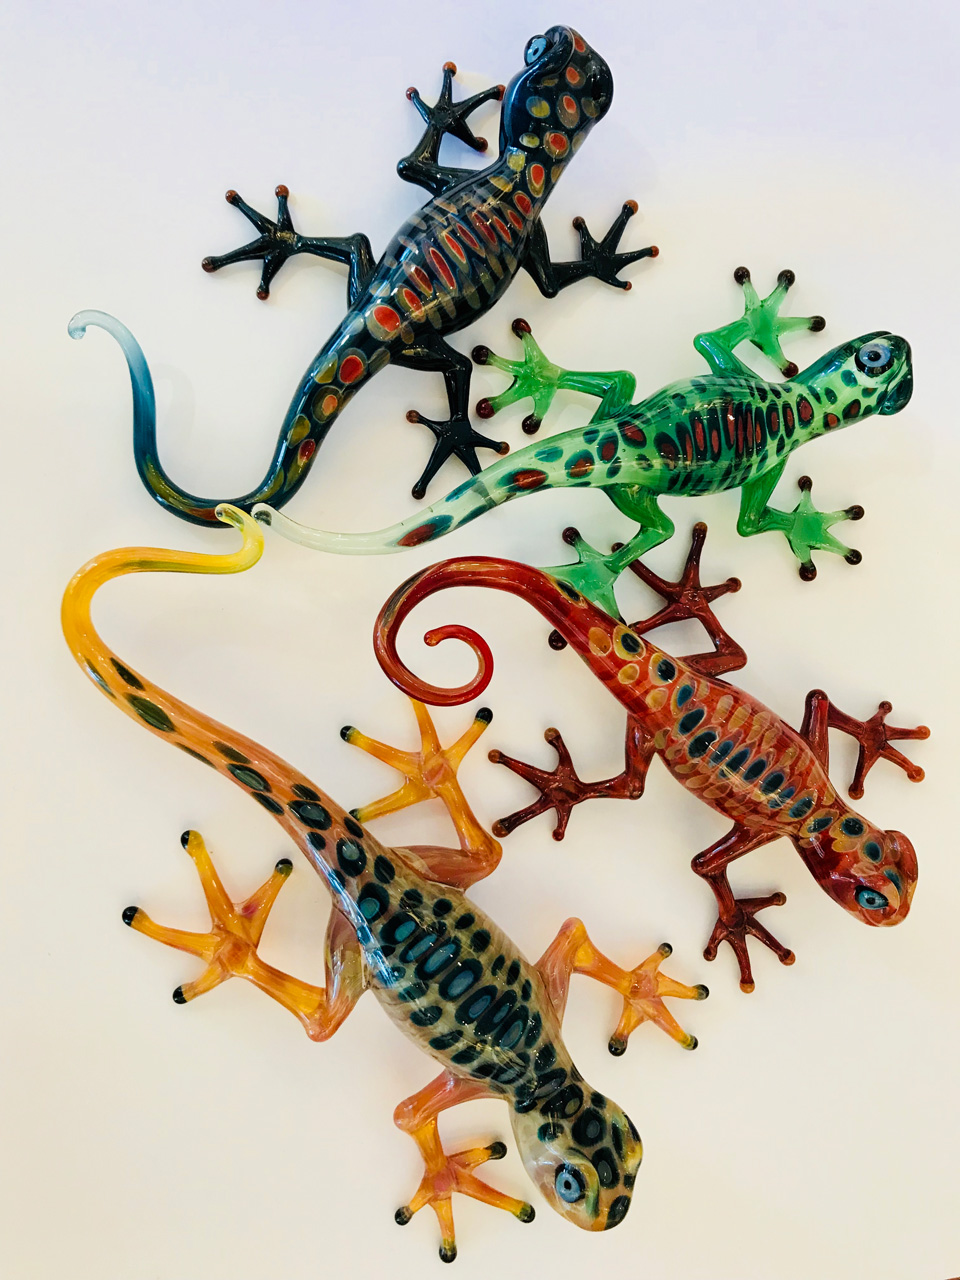 Glass Gecko Group of four by Chris Upp in assorted colors